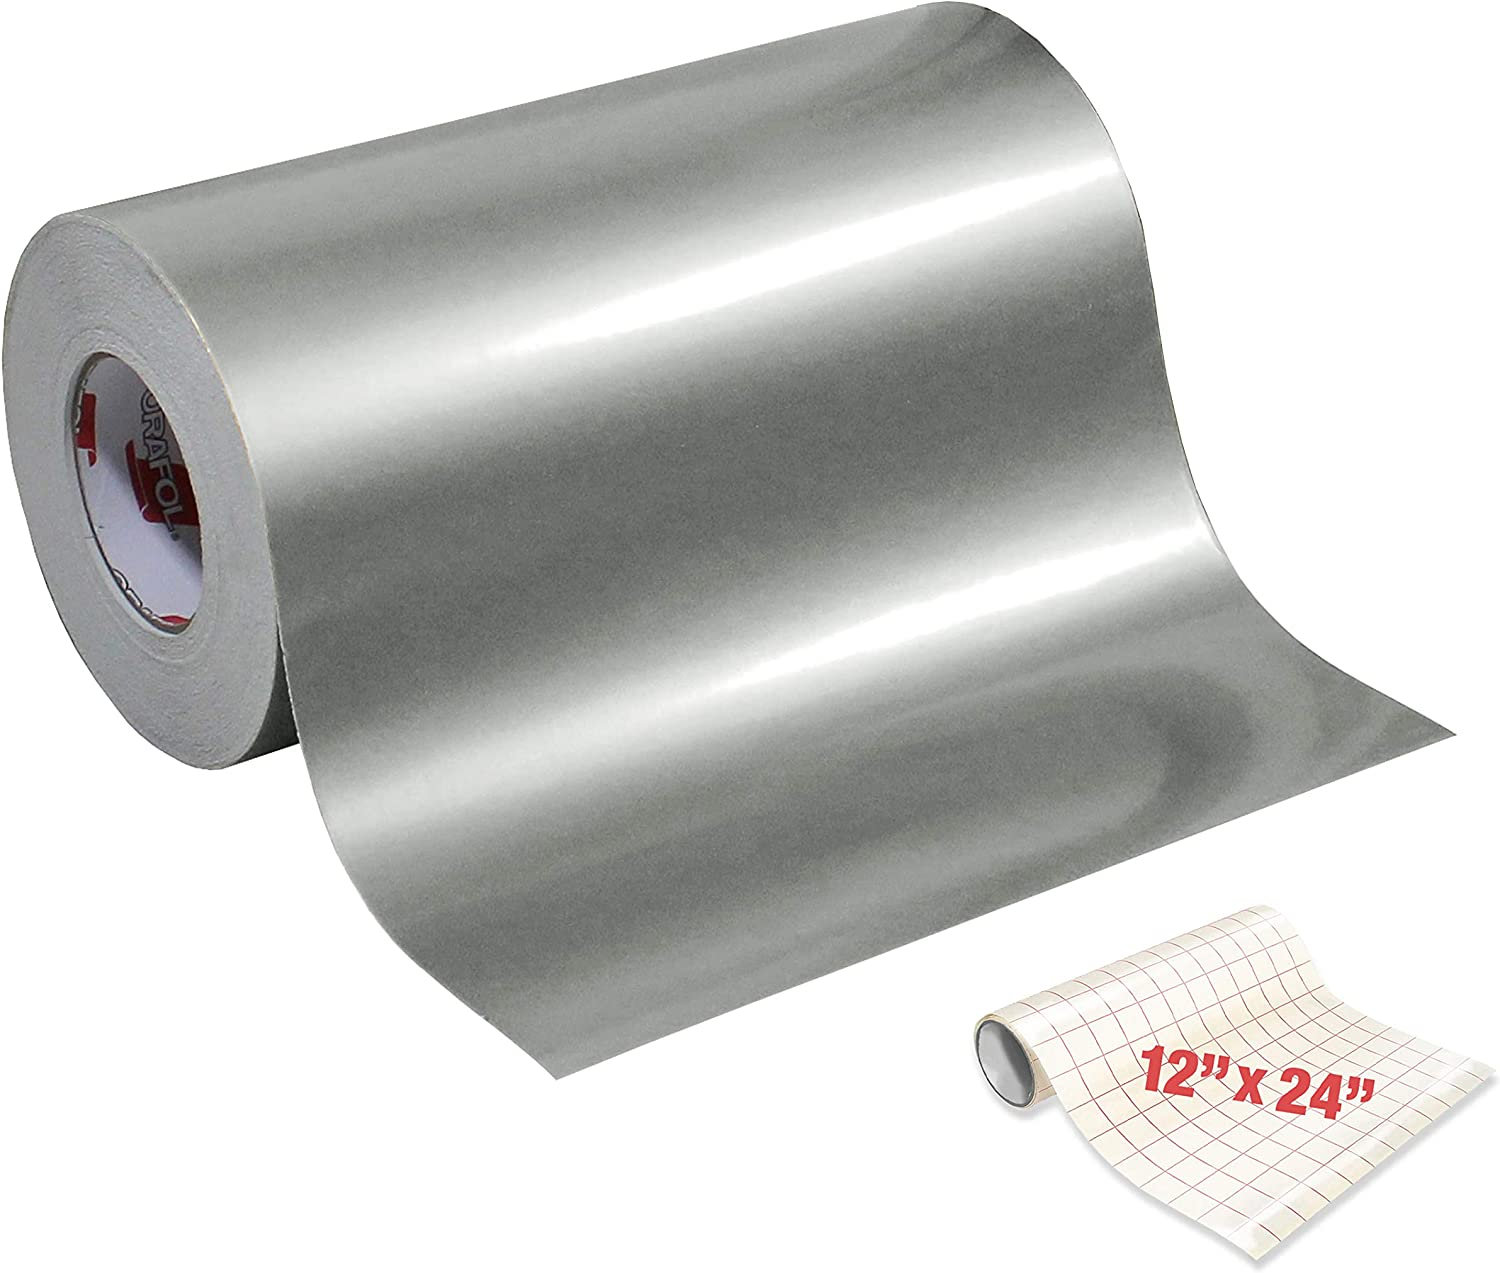 ORACAL 651 Gloss Silver Metallic Adhesive Craft Vinyl 12 x 6ft for Cameo Cricut /& Silhouette Including Free Roll of VViViD Clear Transfer Paper